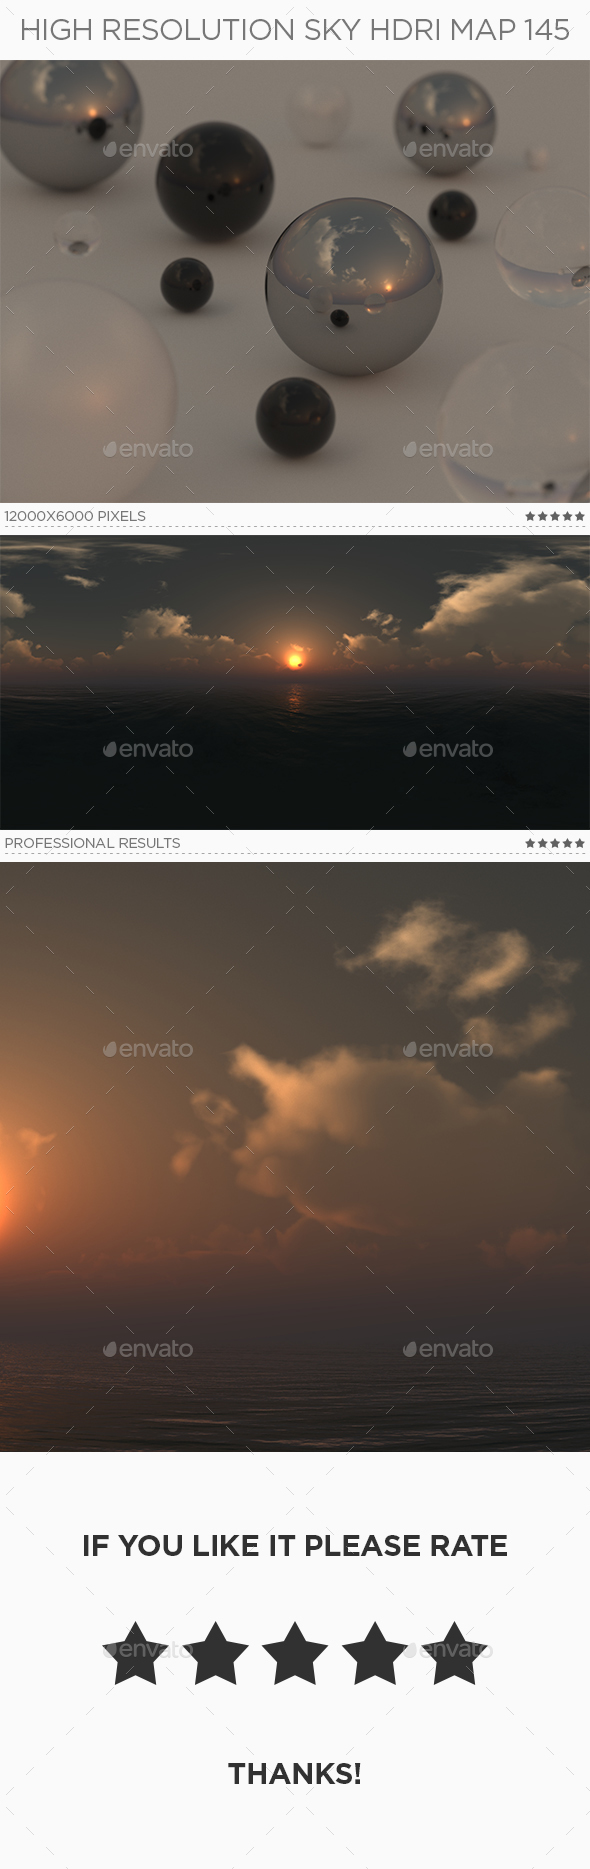 High Resolution Sky HDRi Map 145 - 3DOcean Item for Sale